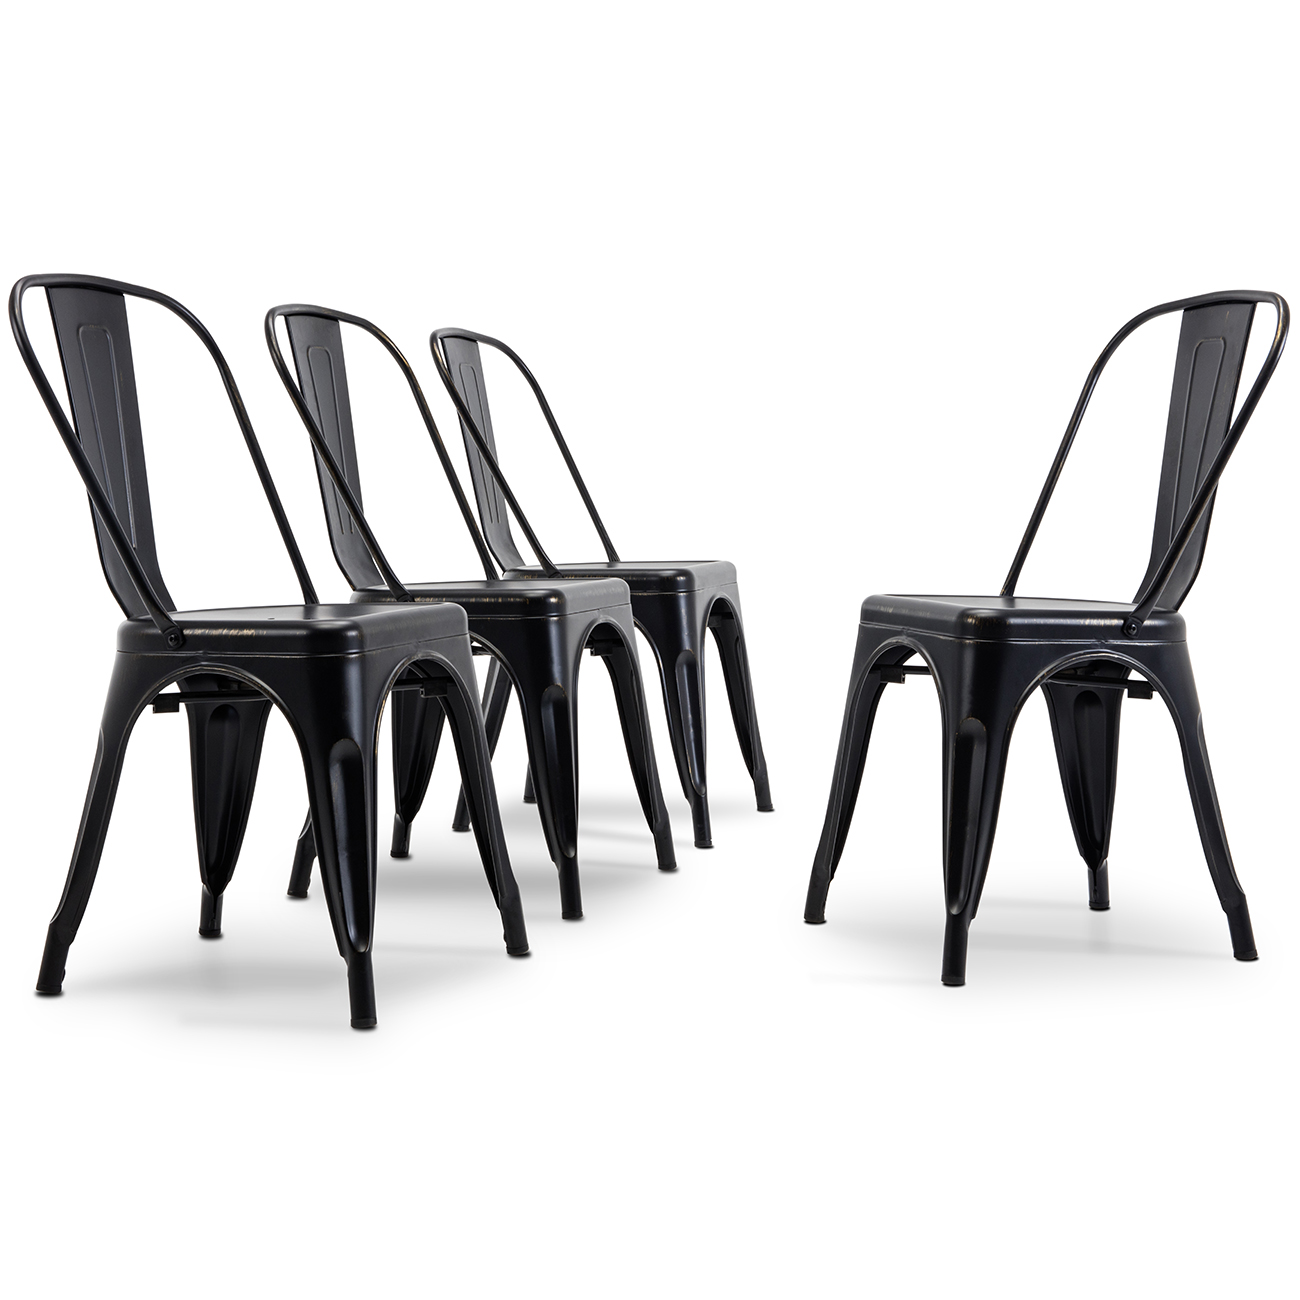 Set Of 4 Vintage Style Stackable Dining Chairs Steel